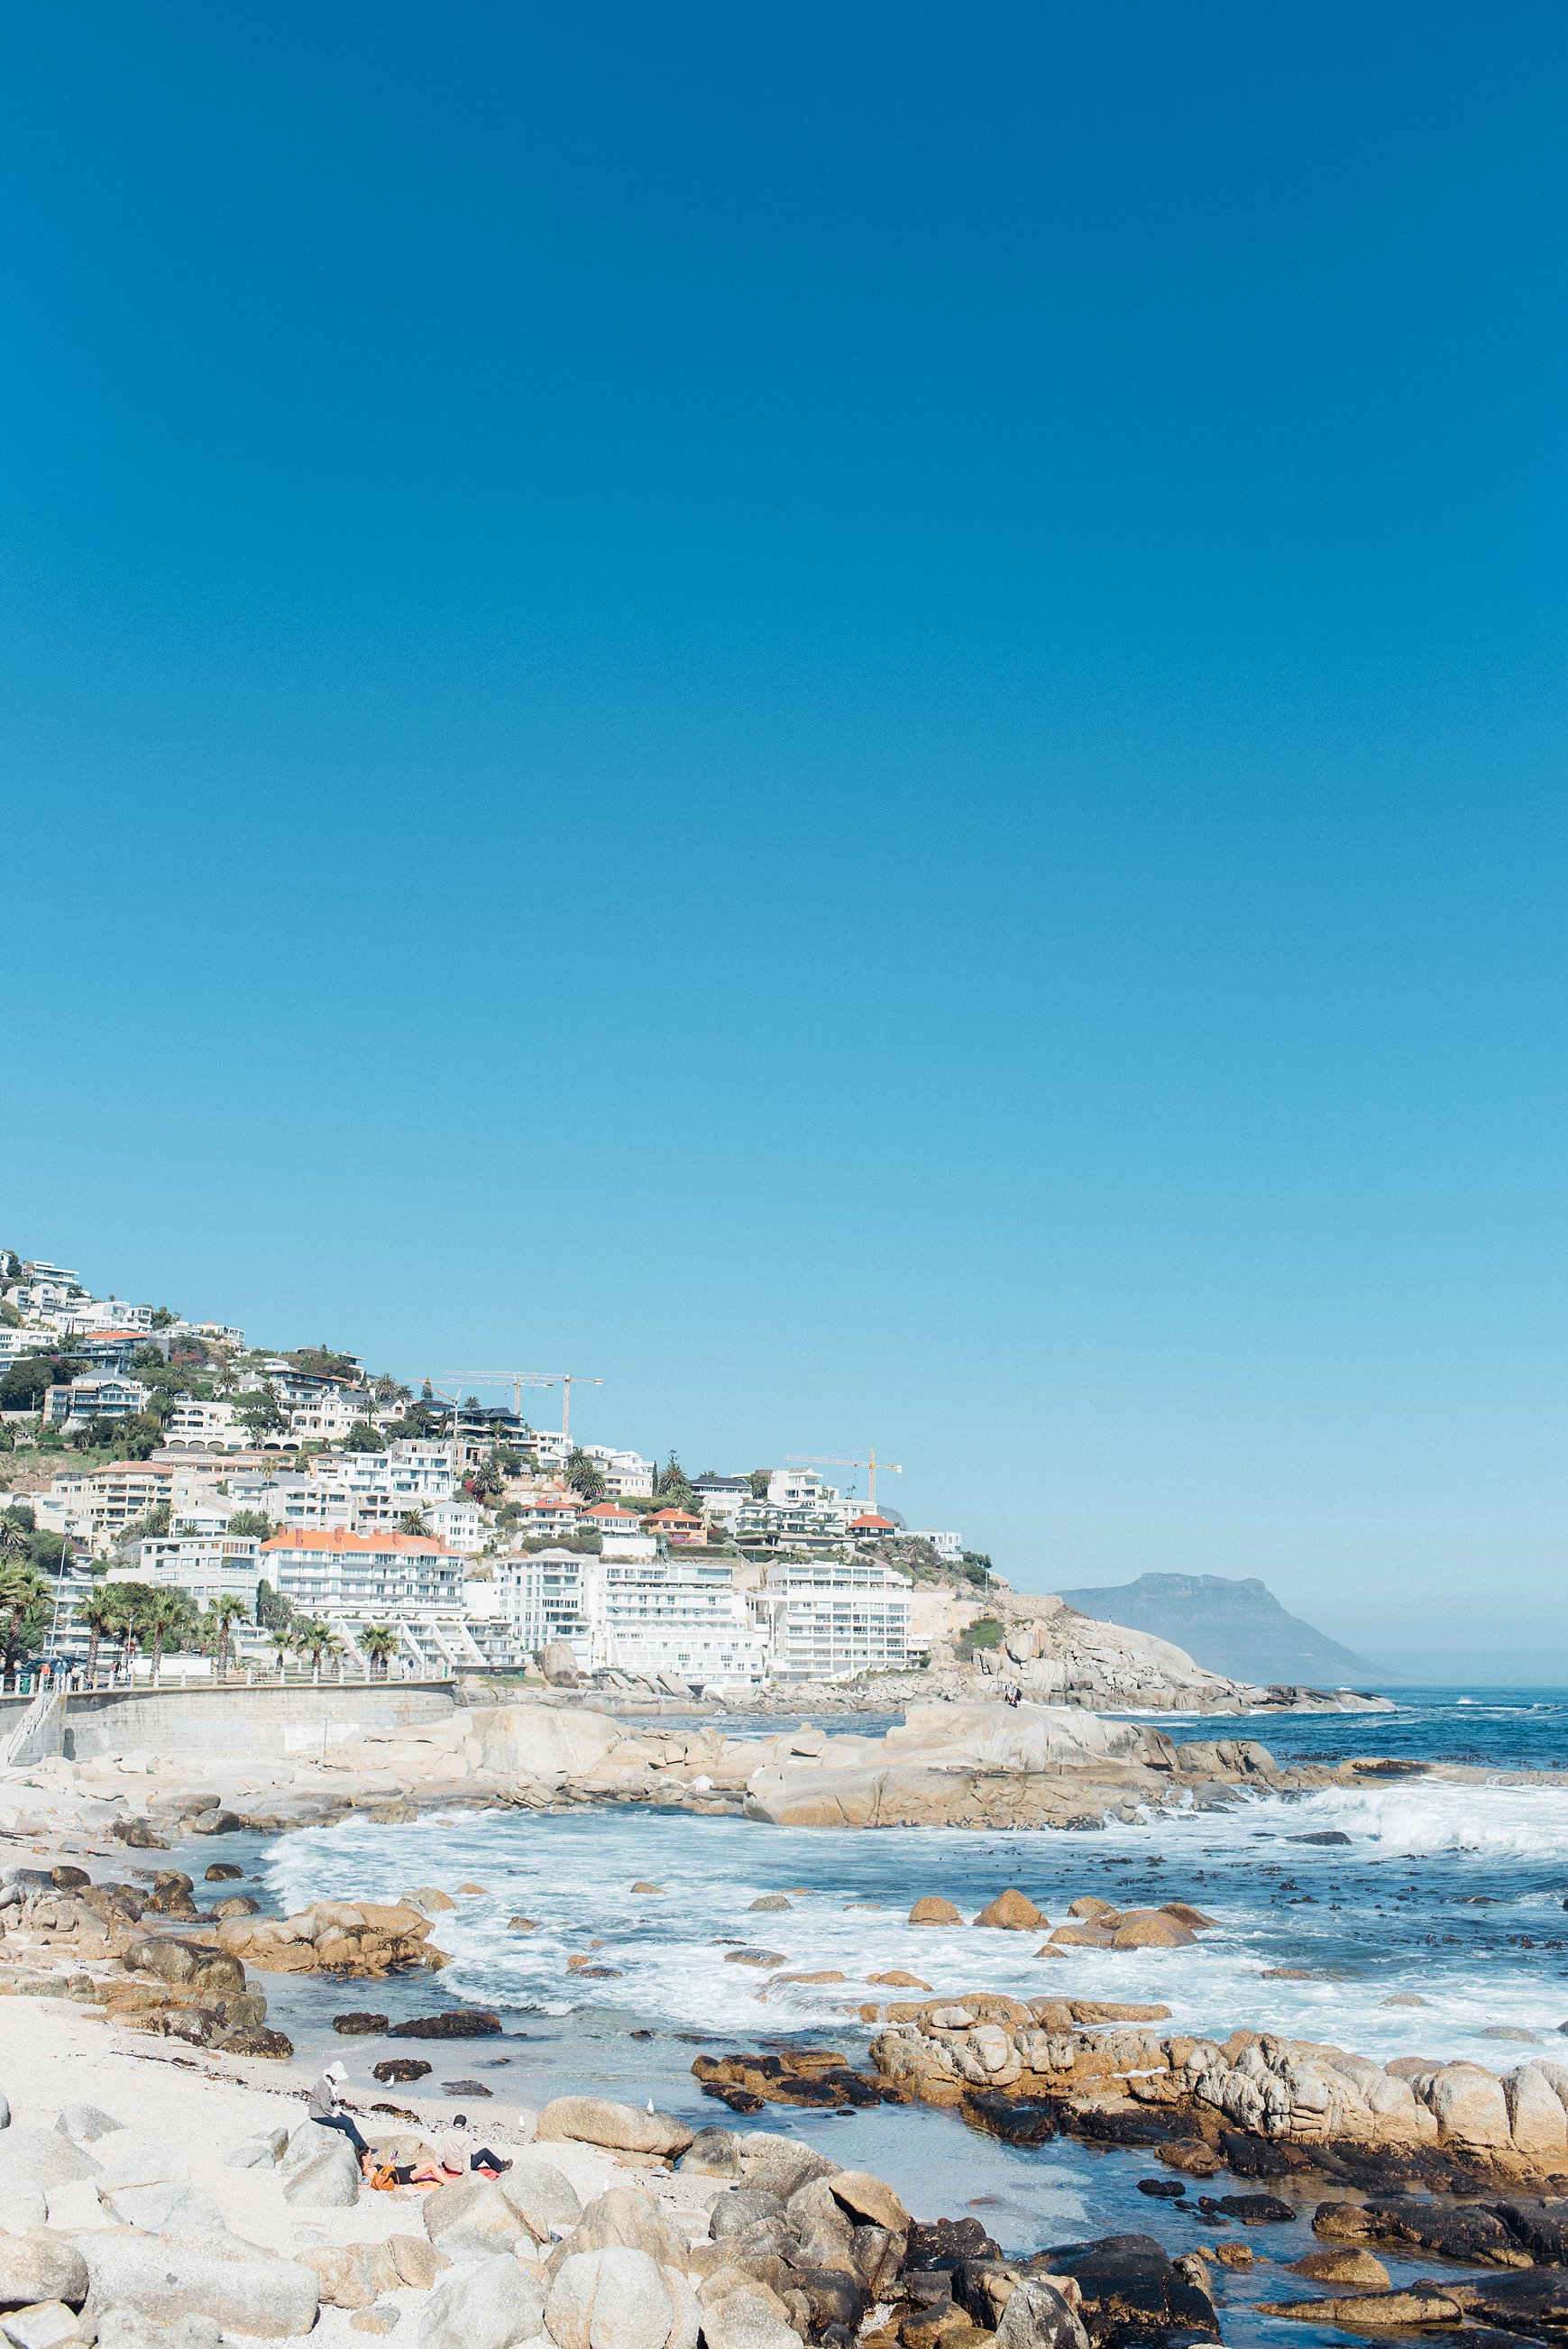 Cape Town, South Africa Travels Day 1 - BLOG - Ali and Batoul Photography-2.jpg